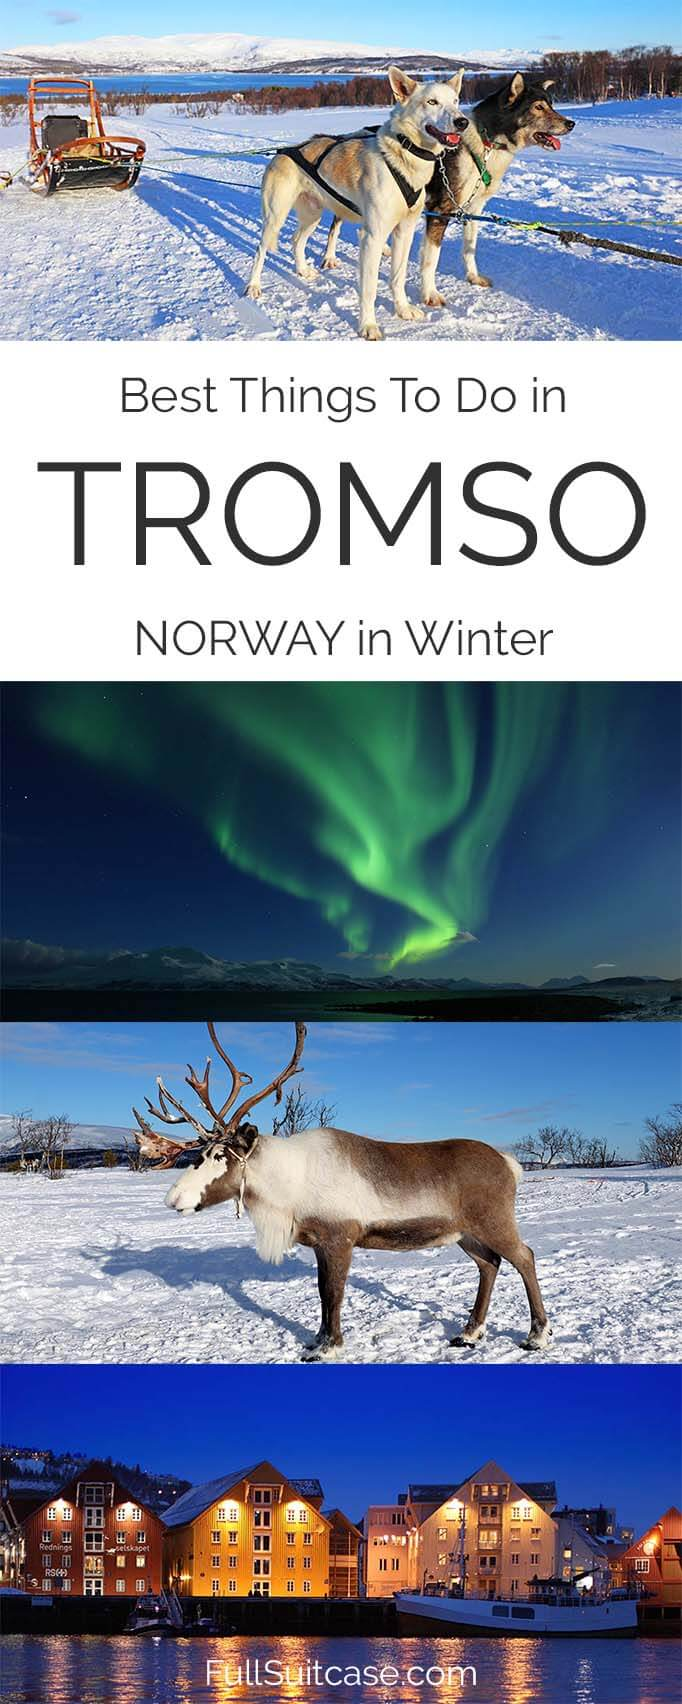 Best things to do in Tromso in winter - Arctic winter wonderland in Northern Norway